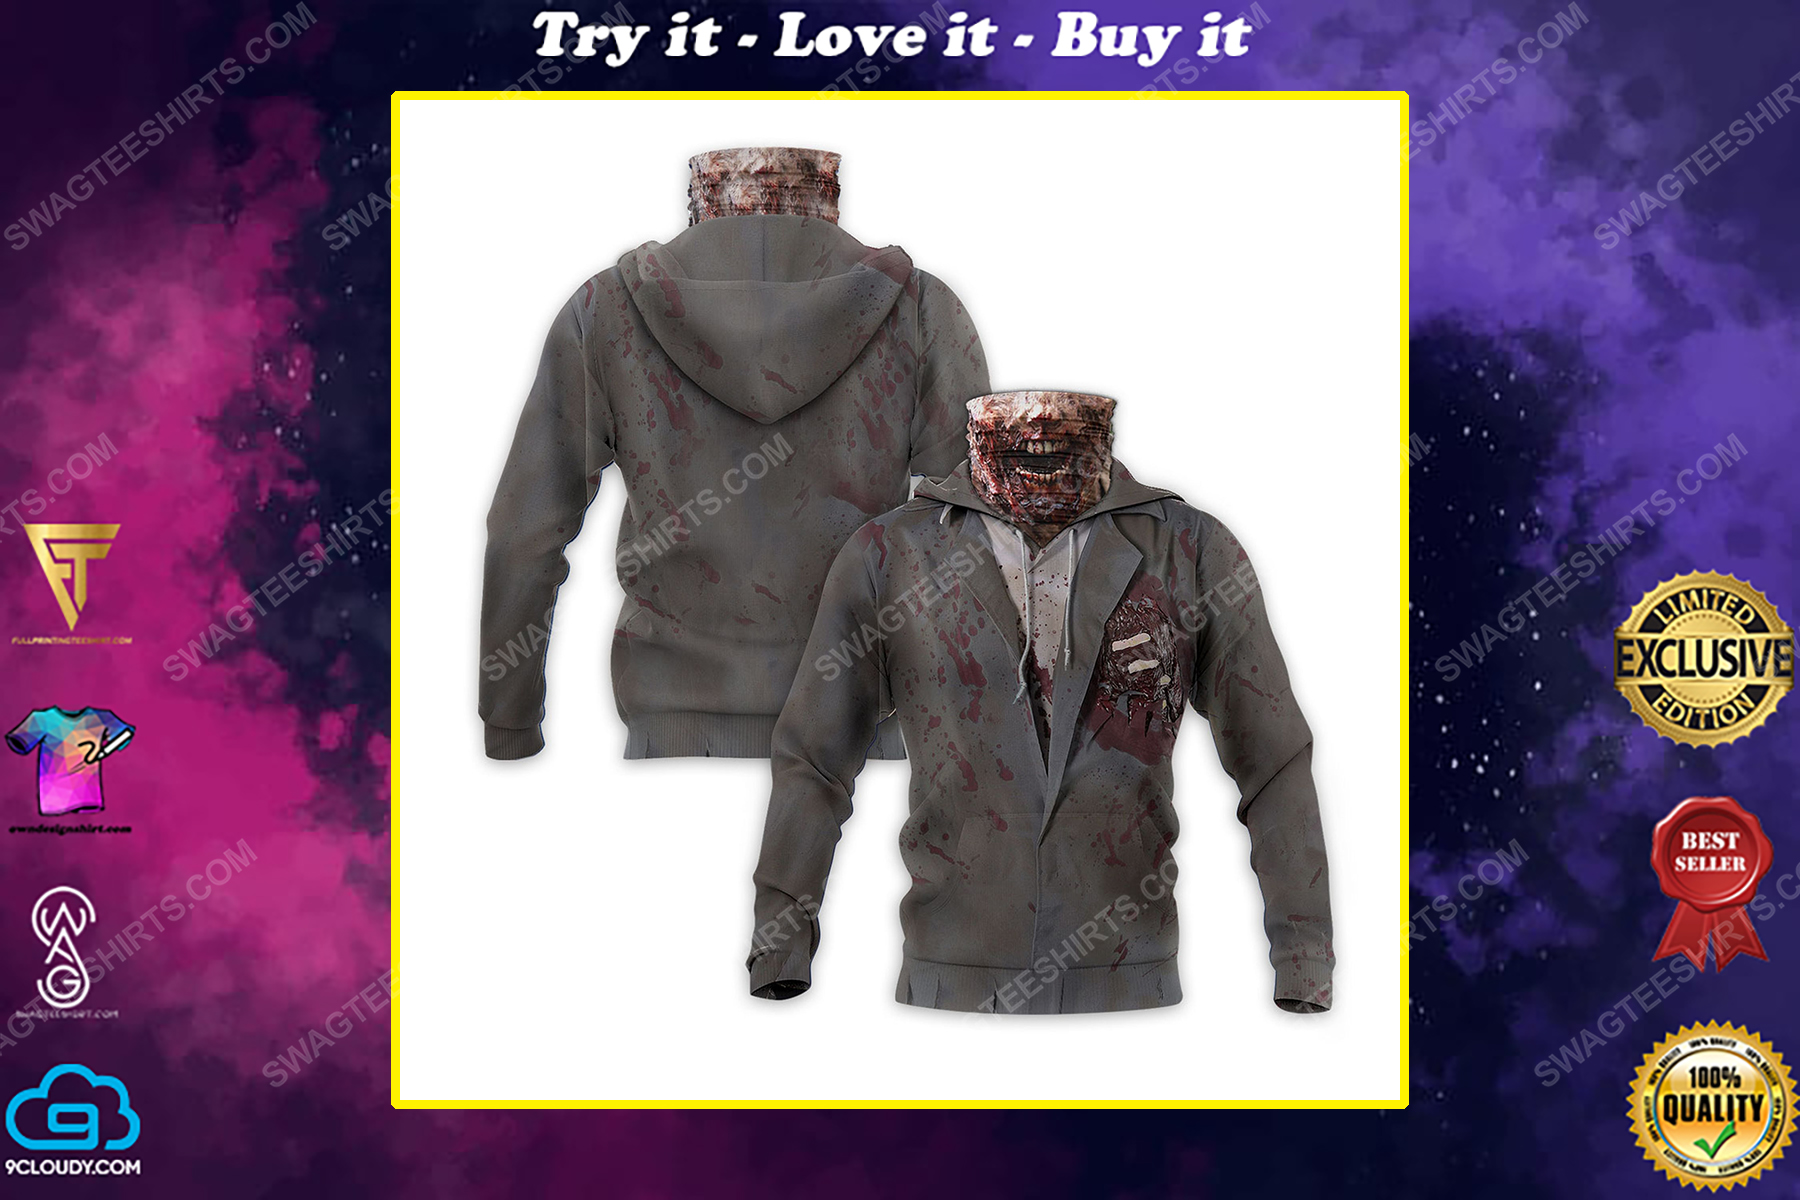 The zombie for halloween full print mask hoodie